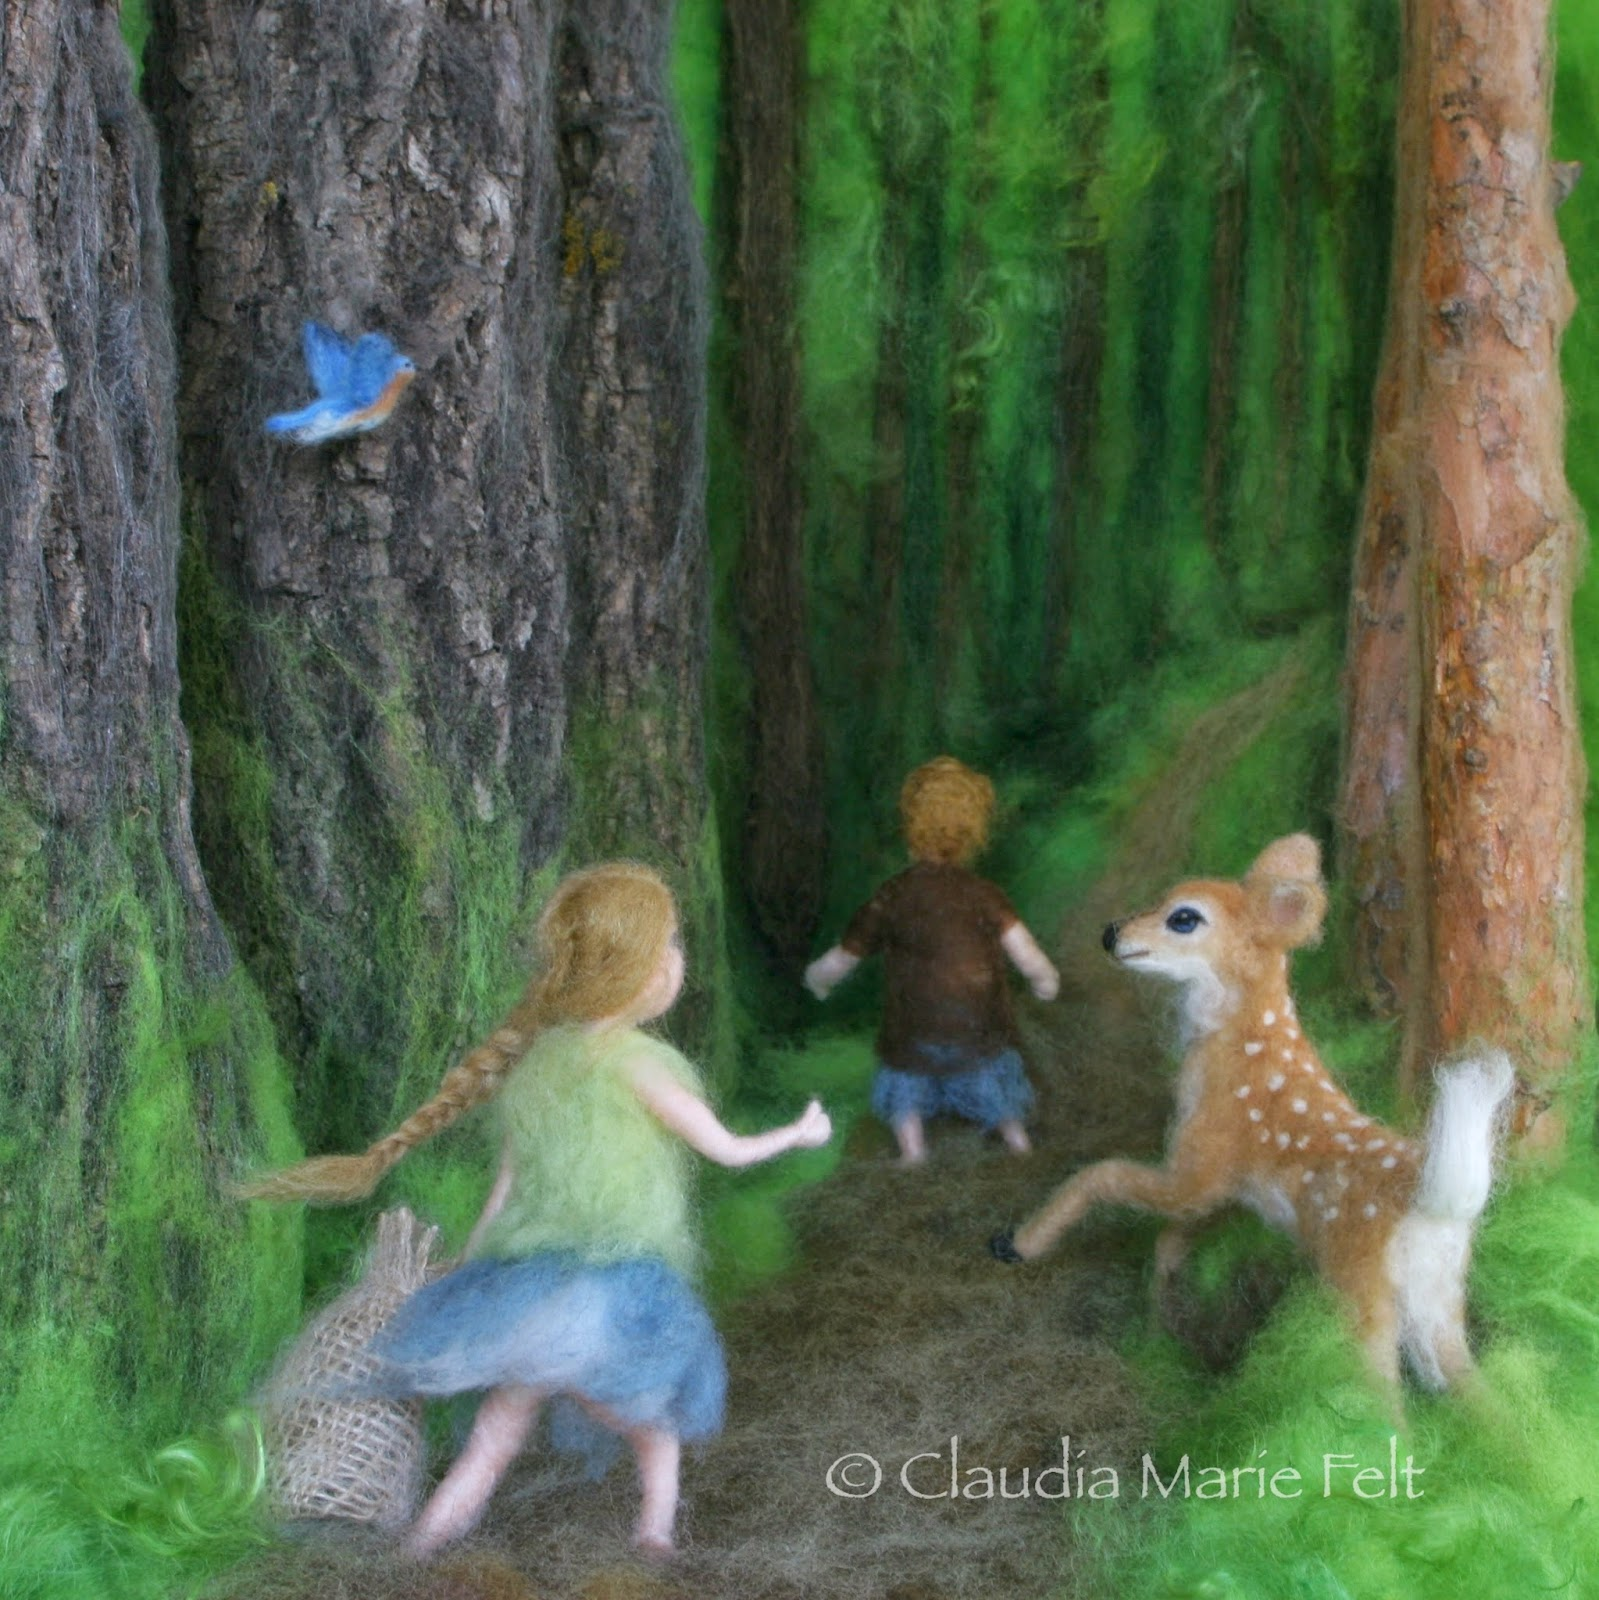 Needle felt book illustration by Claudia Marie Lenart